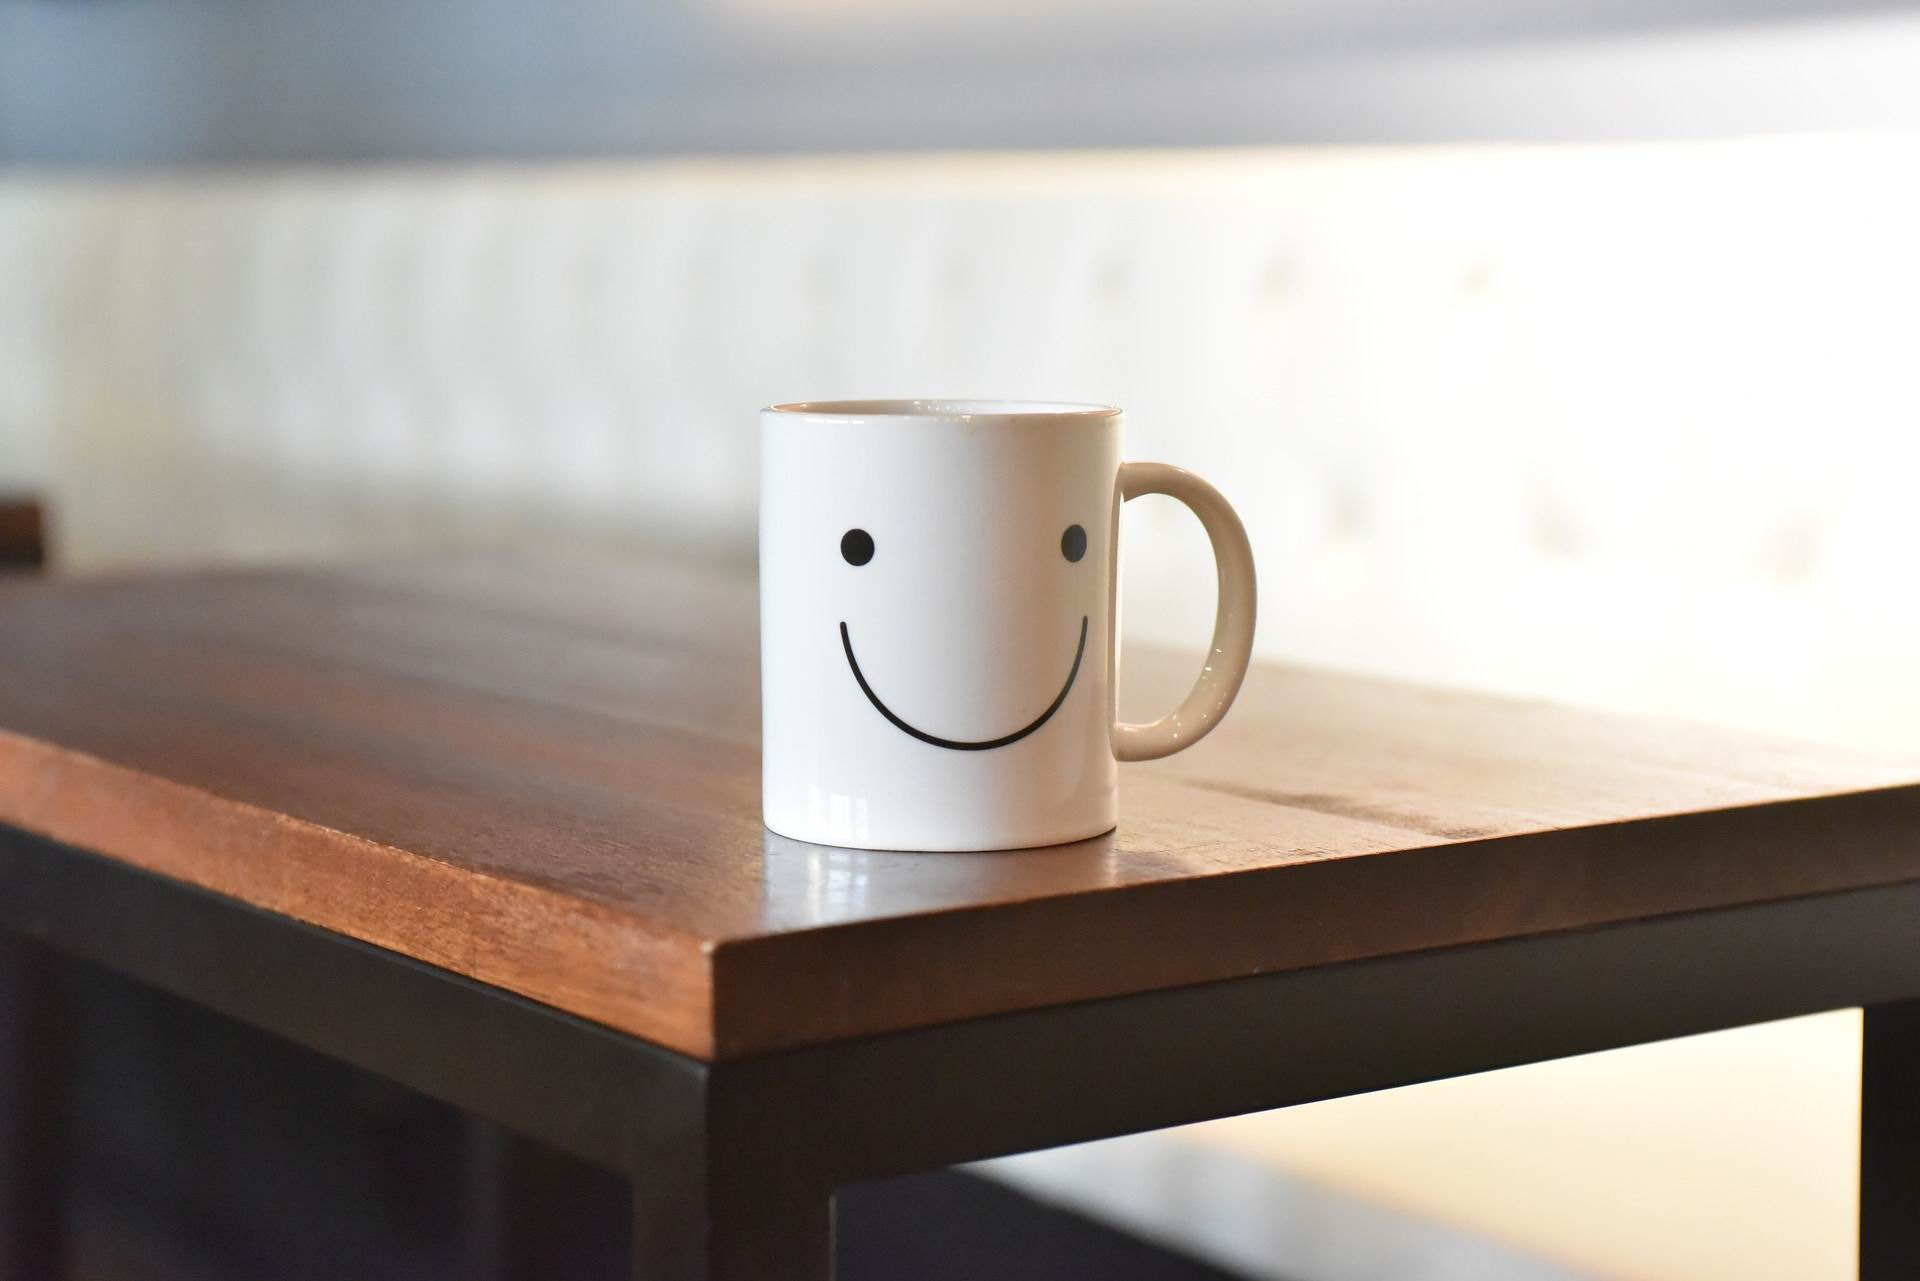 COFFEE CUP SMILEY WHITE - Bosco_lee 1310 PX